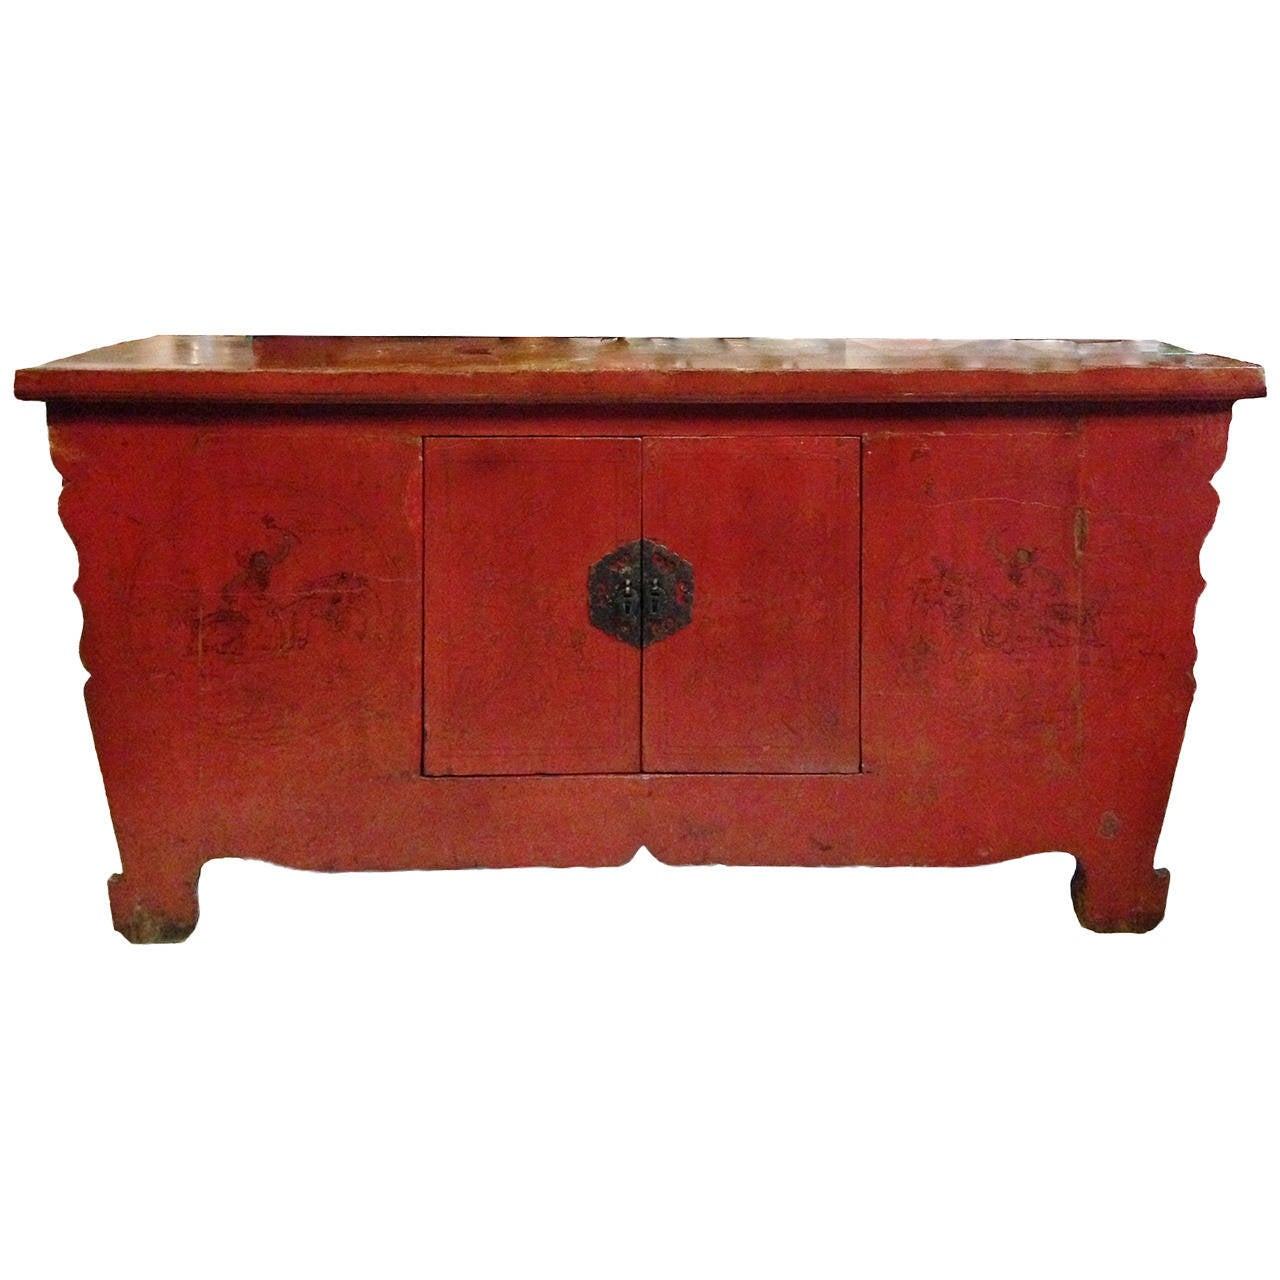 Chinese antique cinnabar chest at 1stdibs for Asian furniture